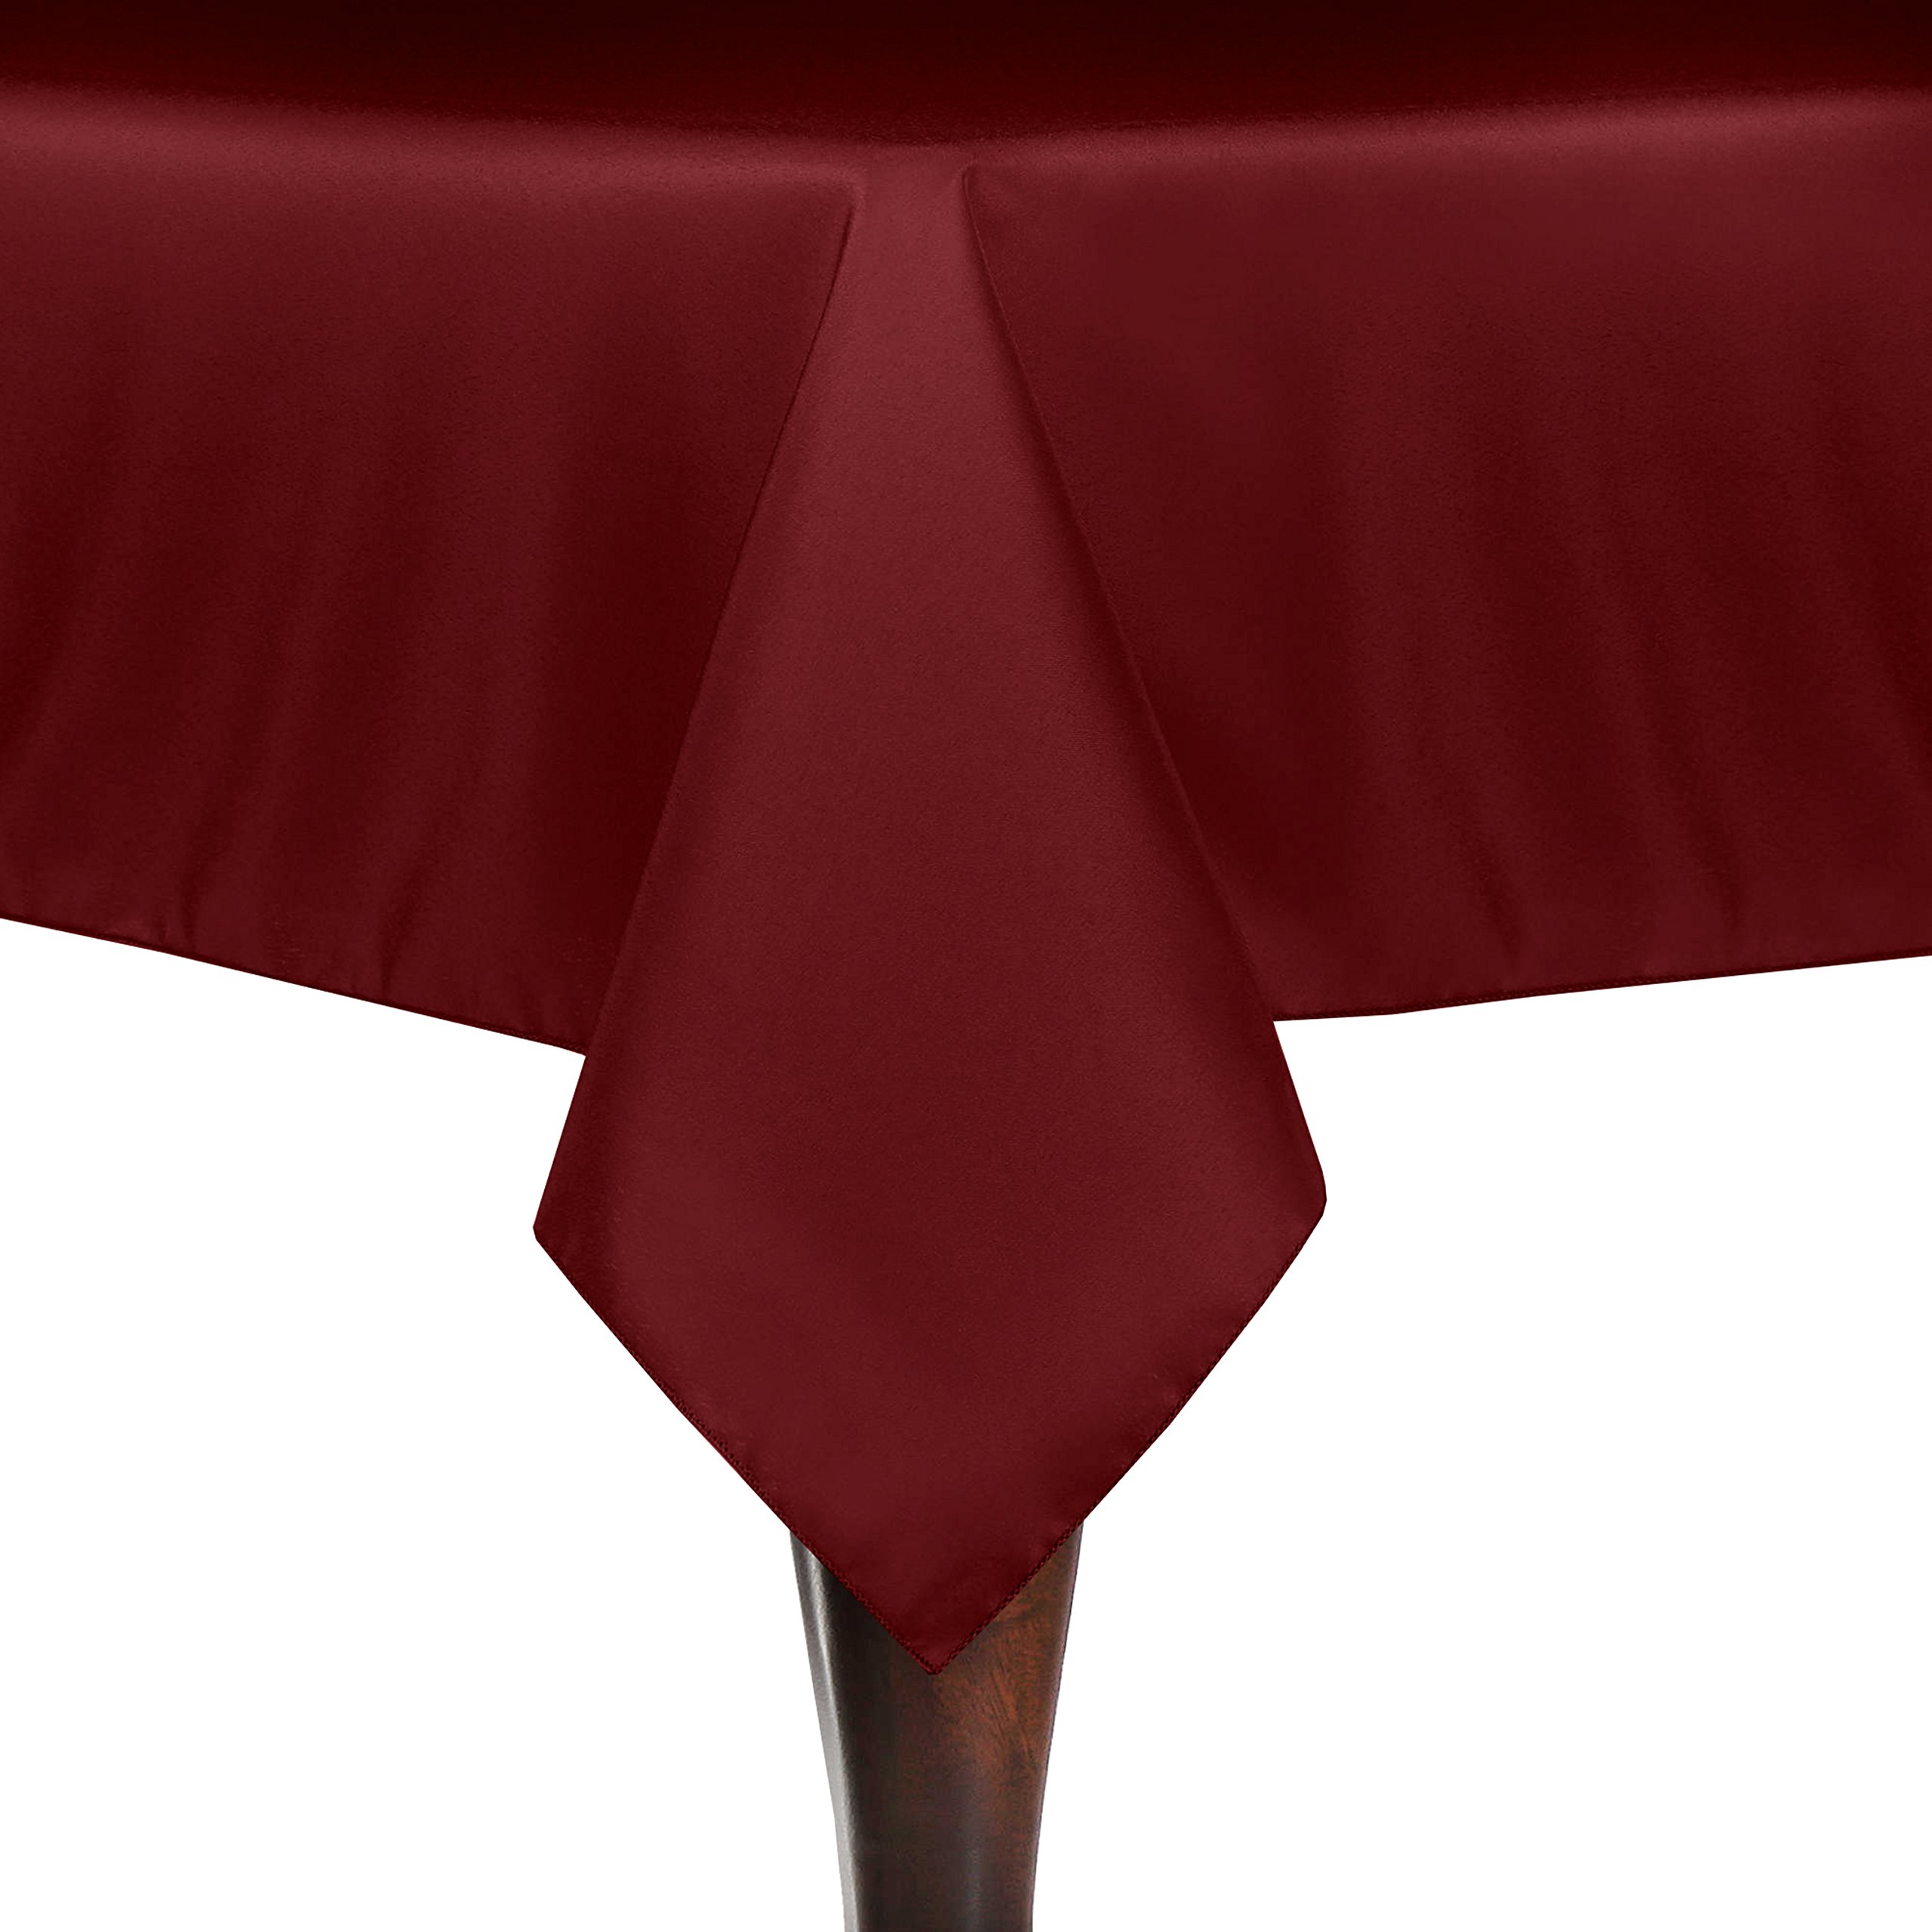 Ultimate Textile (10 Pack) 60 x 120-Inch Rectangular Polyester Linen Tablecloth - for Wedding, Restaurant or Banquet use, Cherry Red